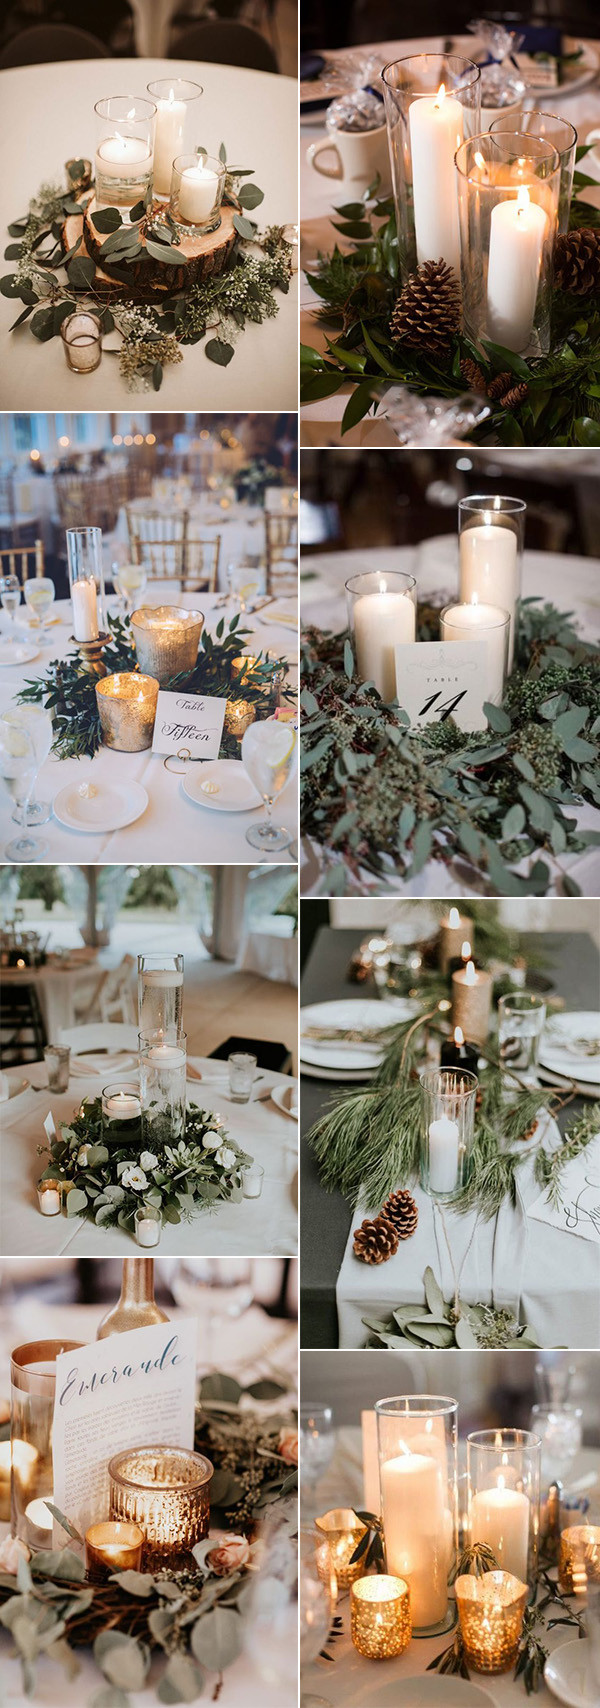 winter wedding centerpieces with greenery and candles